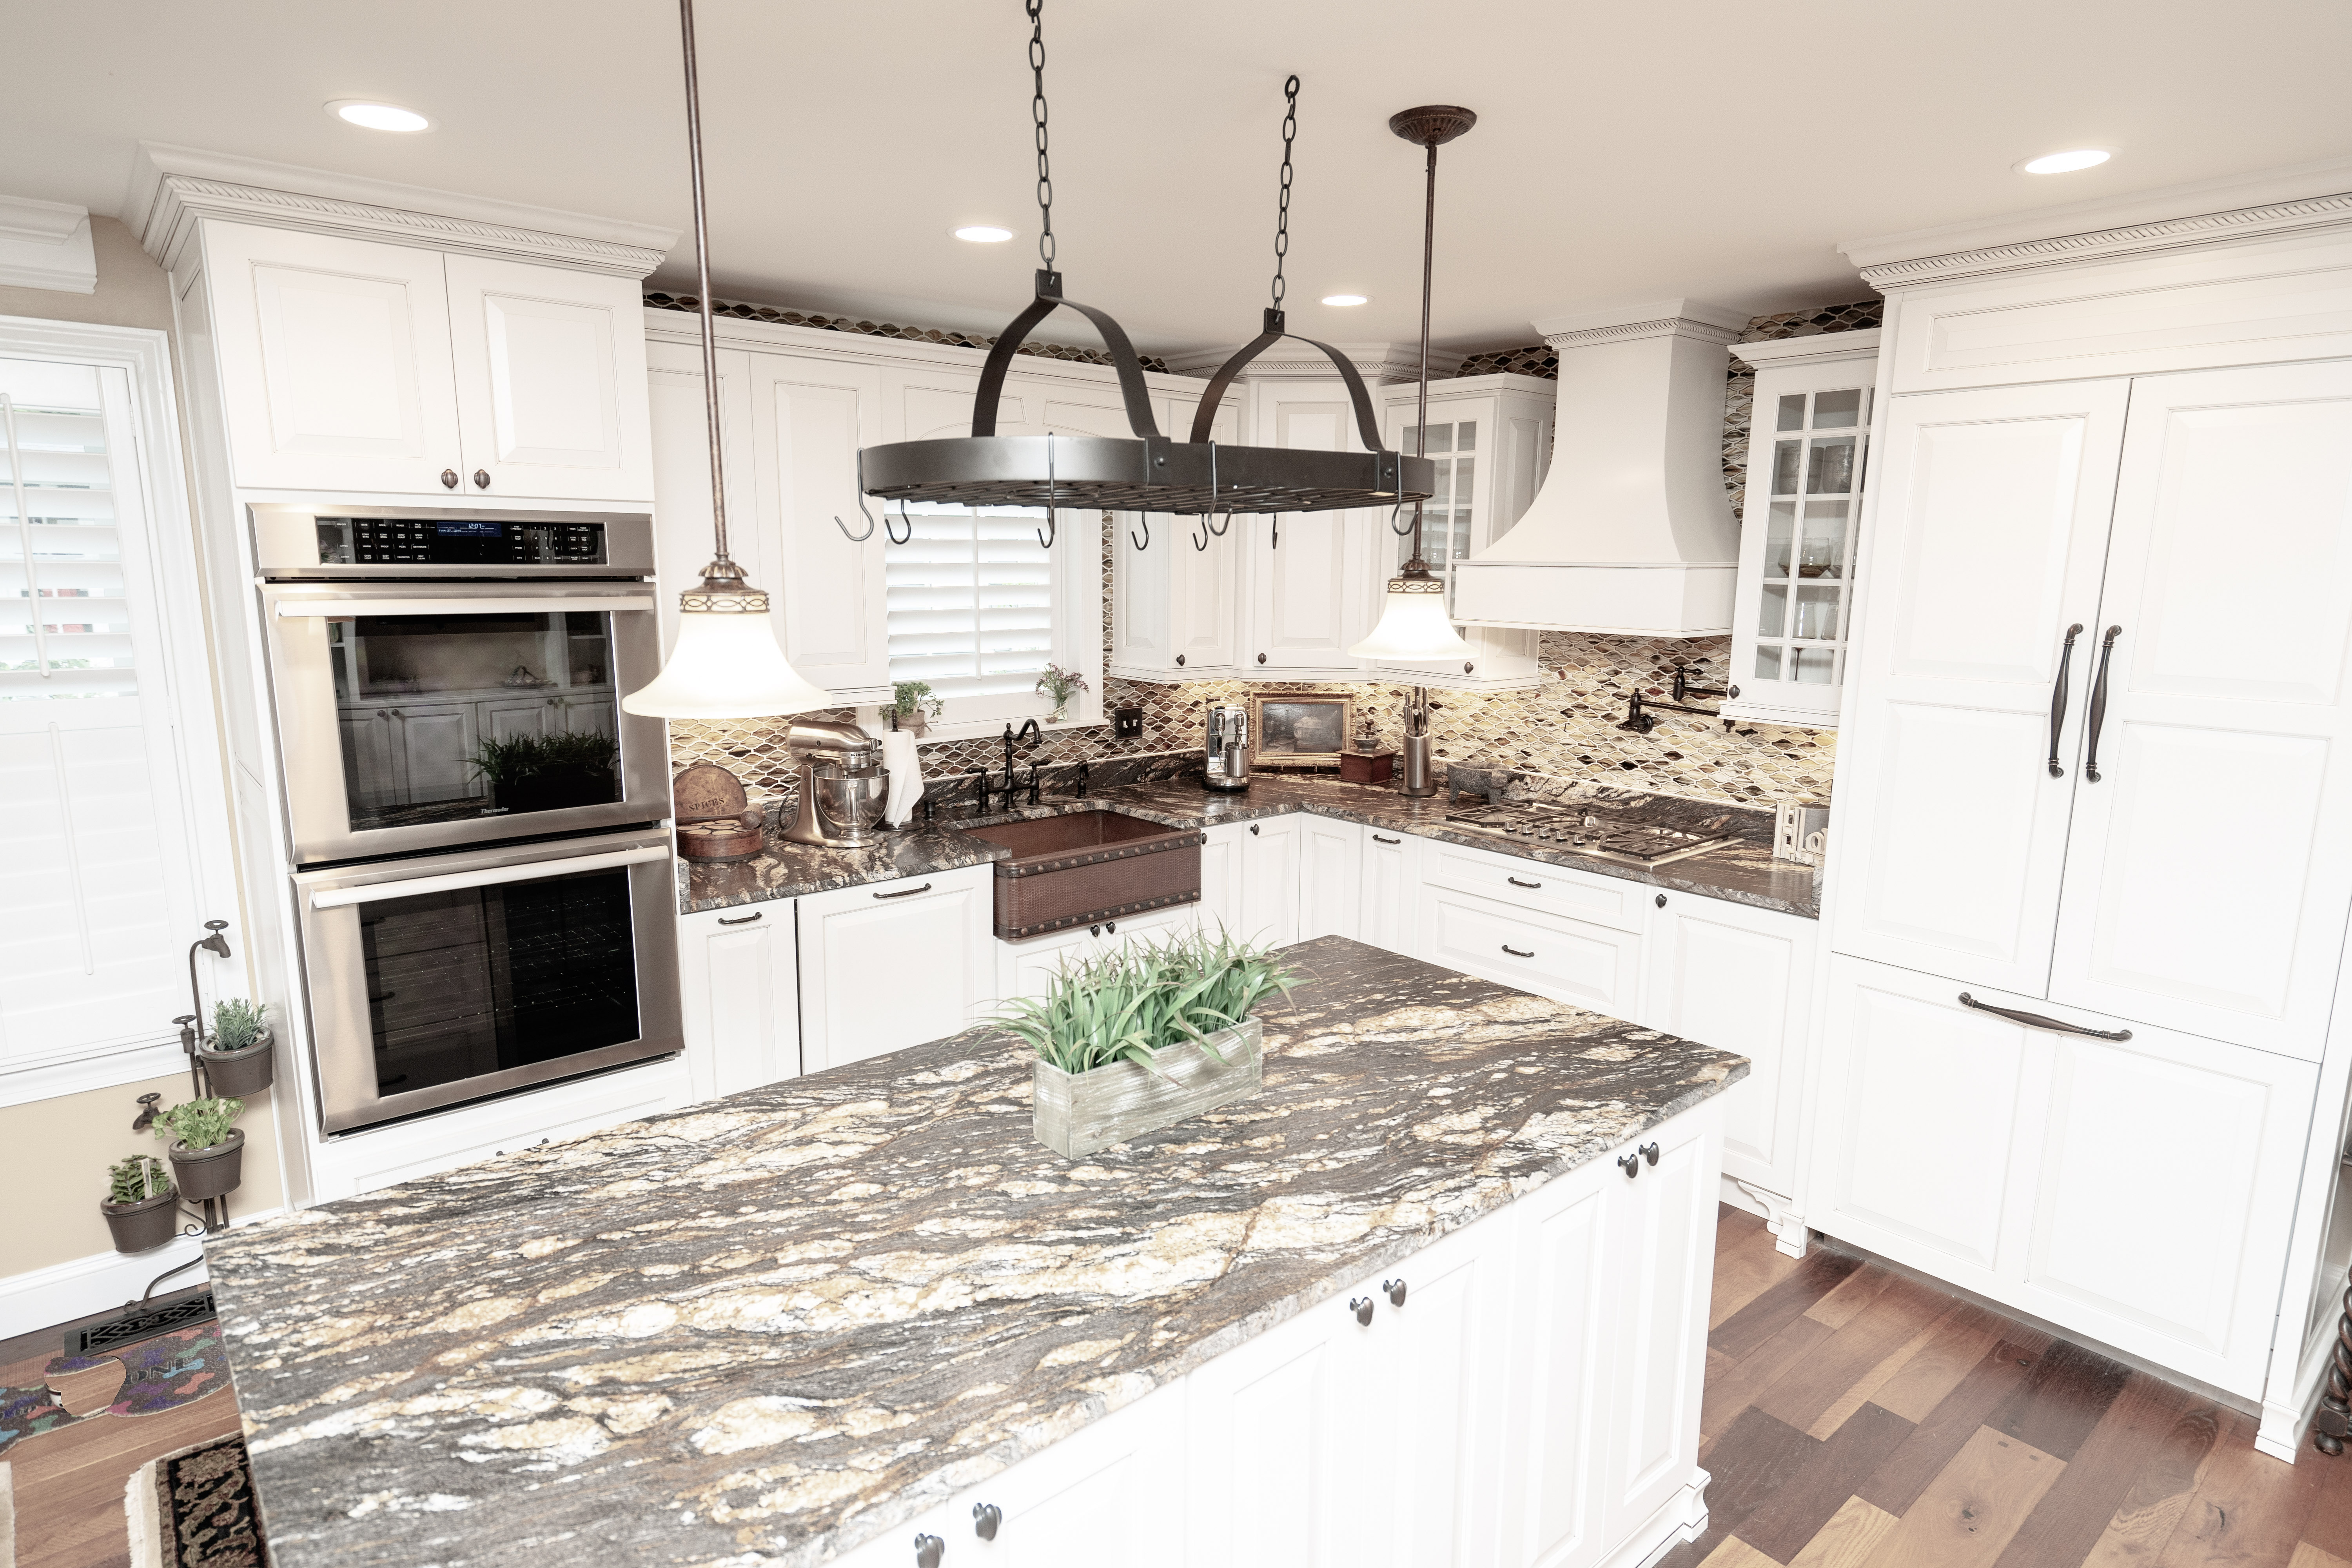 The Post Kitchen Remoldeling In Arlington, VA Appeared First On Kitchen U0026  Bath Remodeling/Cabinets | USA Cabinet Store.